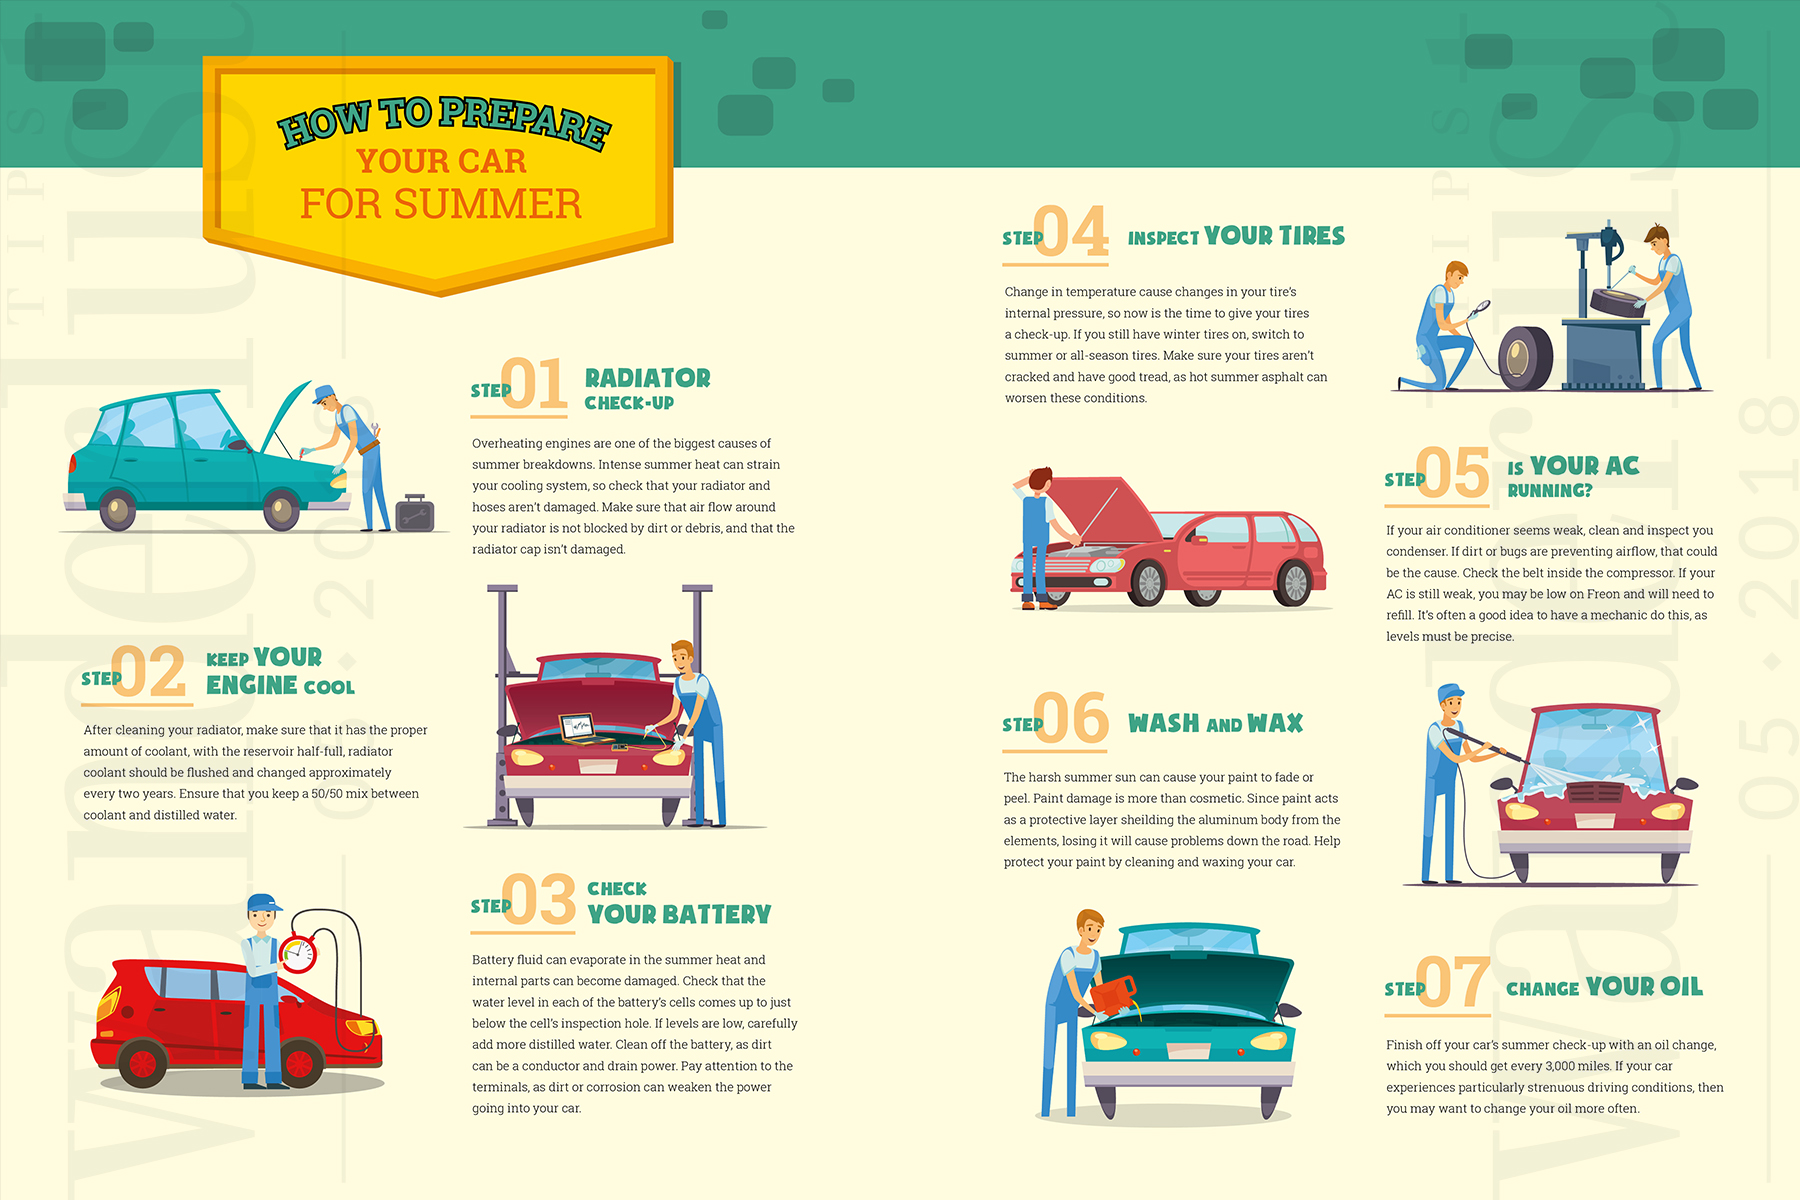 Wanderlust Tips Magazine | How to prepare your car for summer